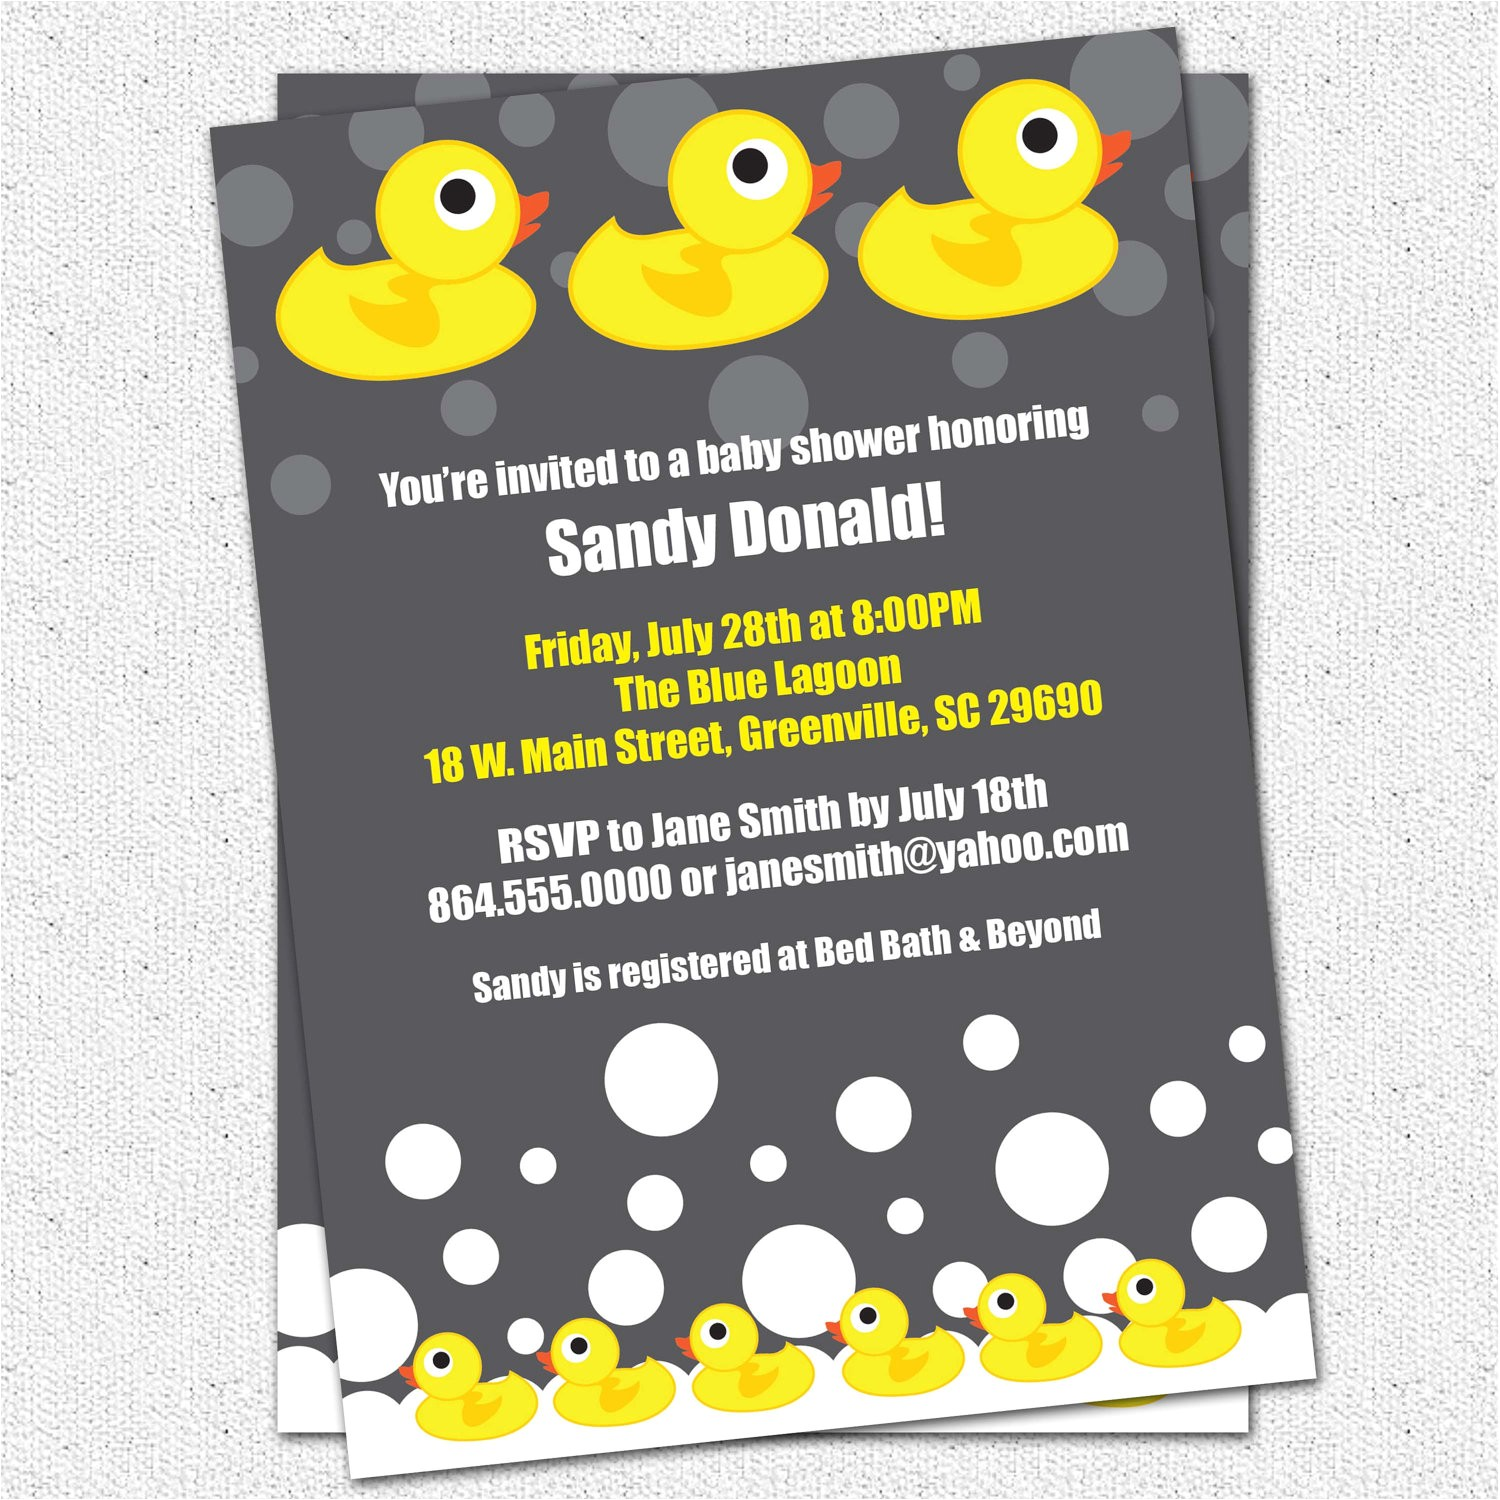 baby shower invitations rubber duck ducky duckie gender neutral boy or girl